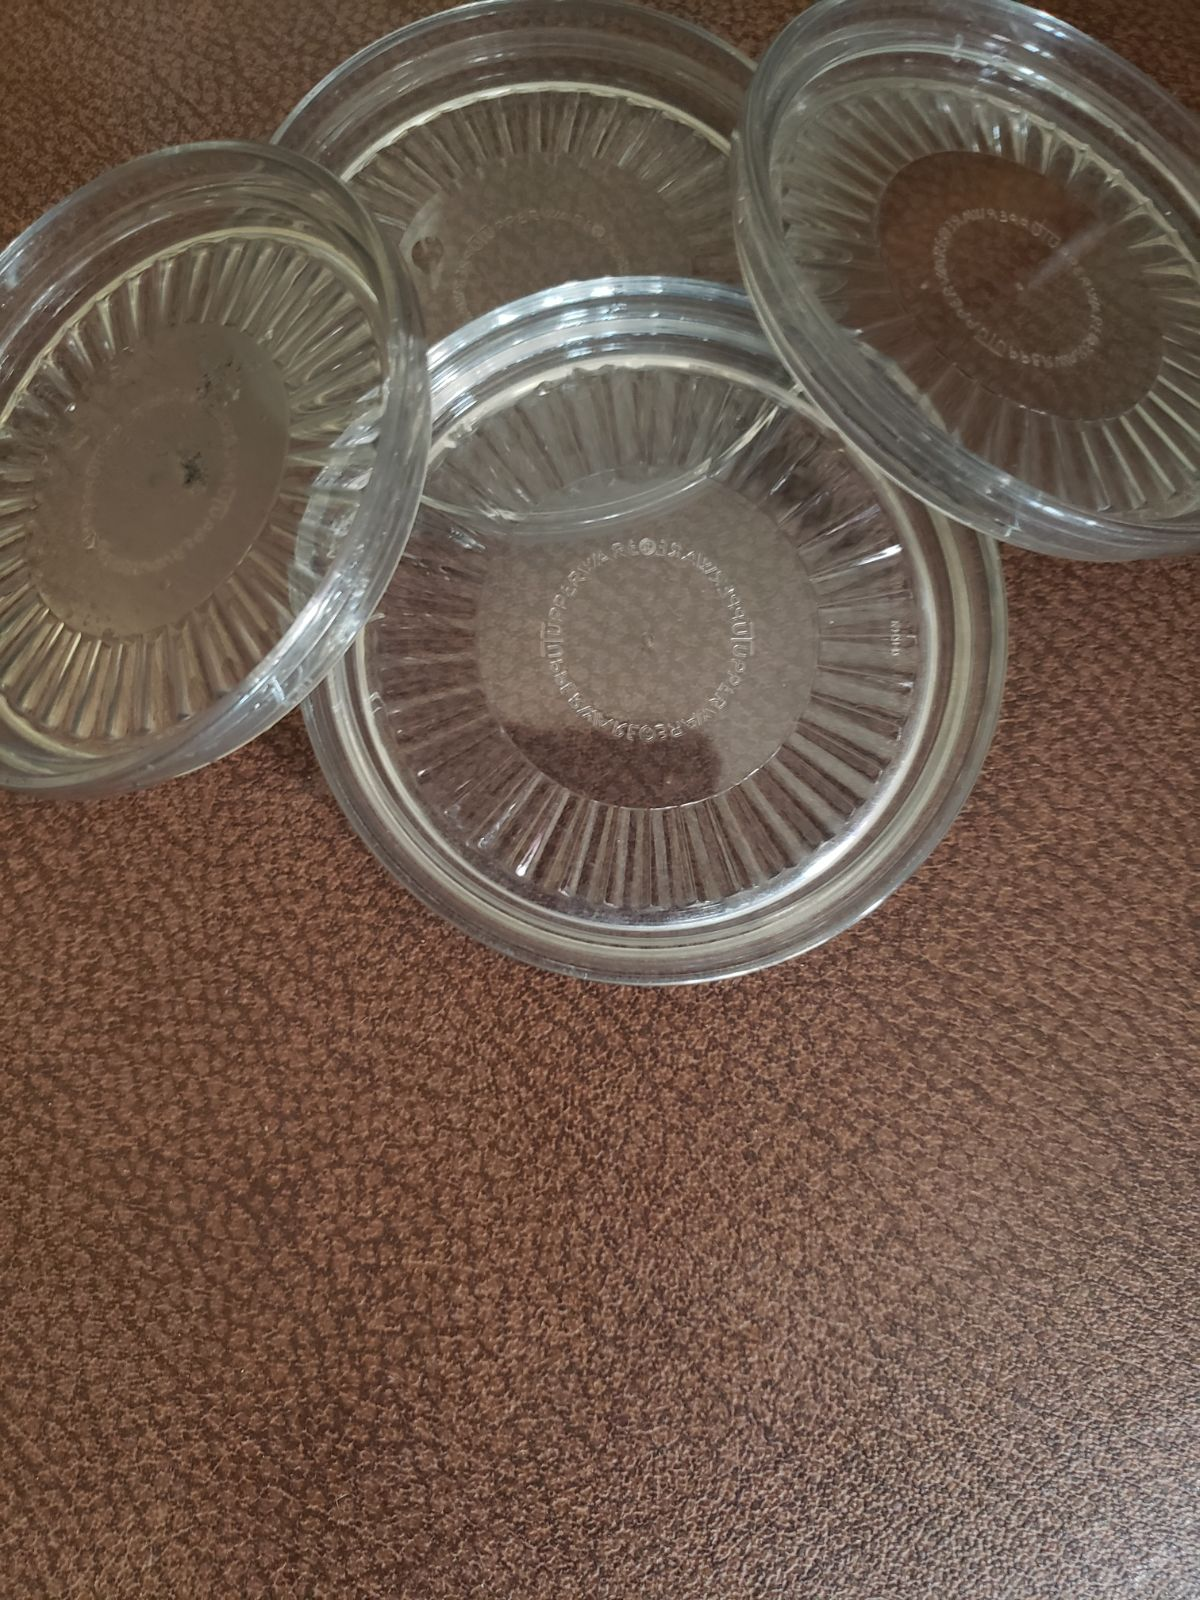 Tupperware Glass/Cup Acrylic Coasters